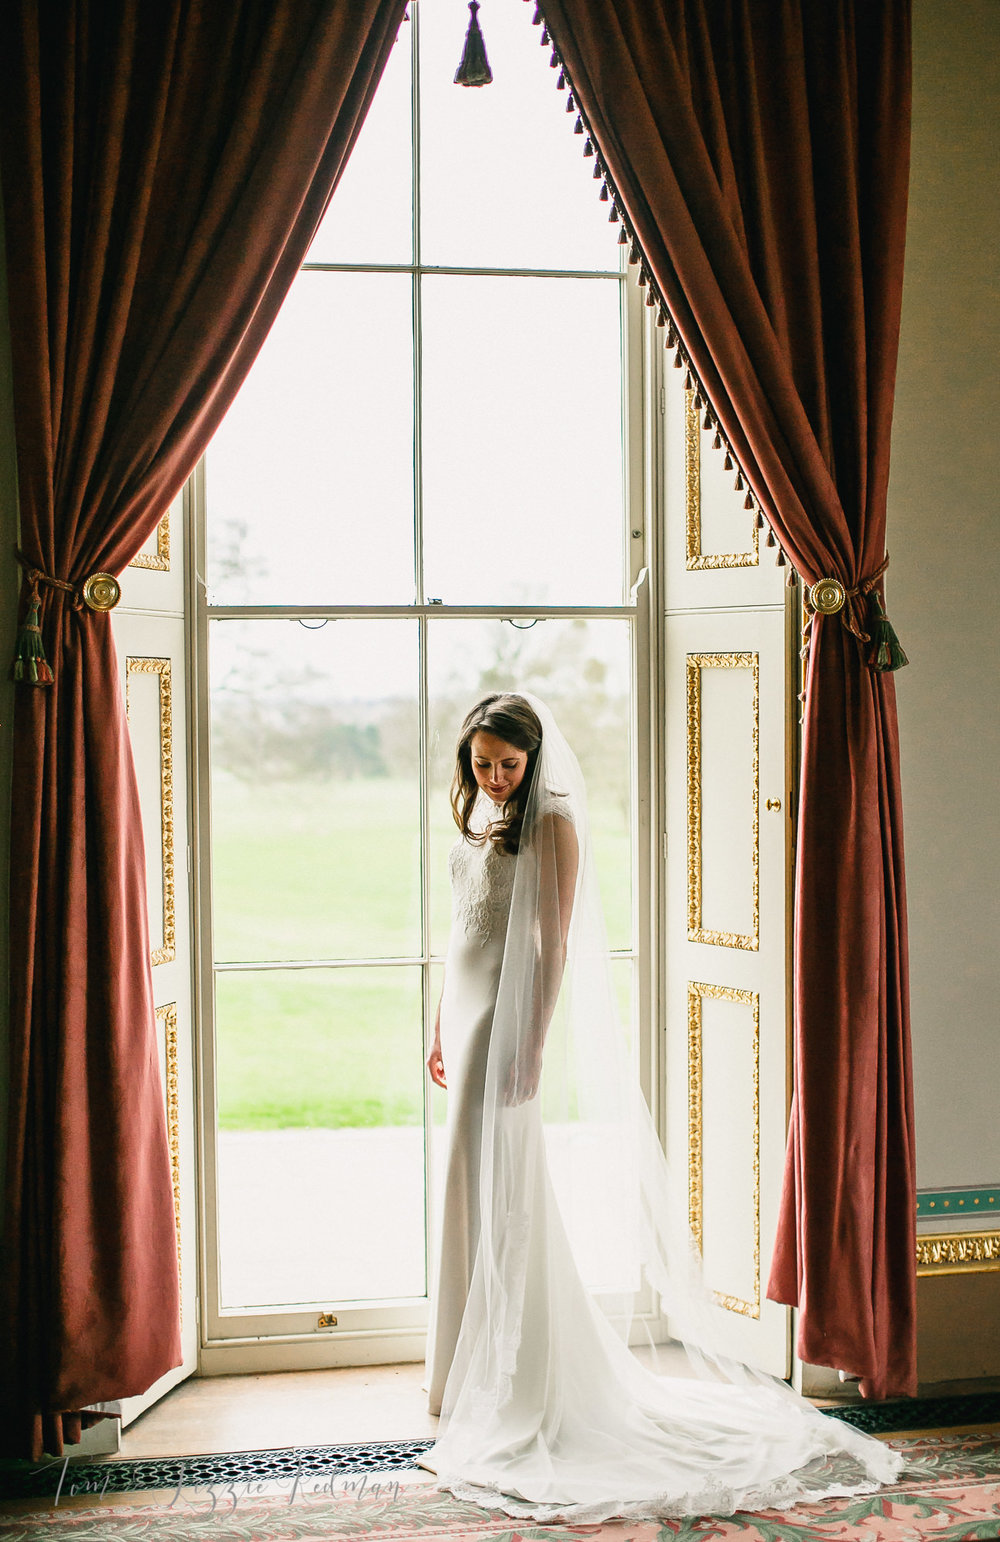 Dorset wedding photographers 027.jpg